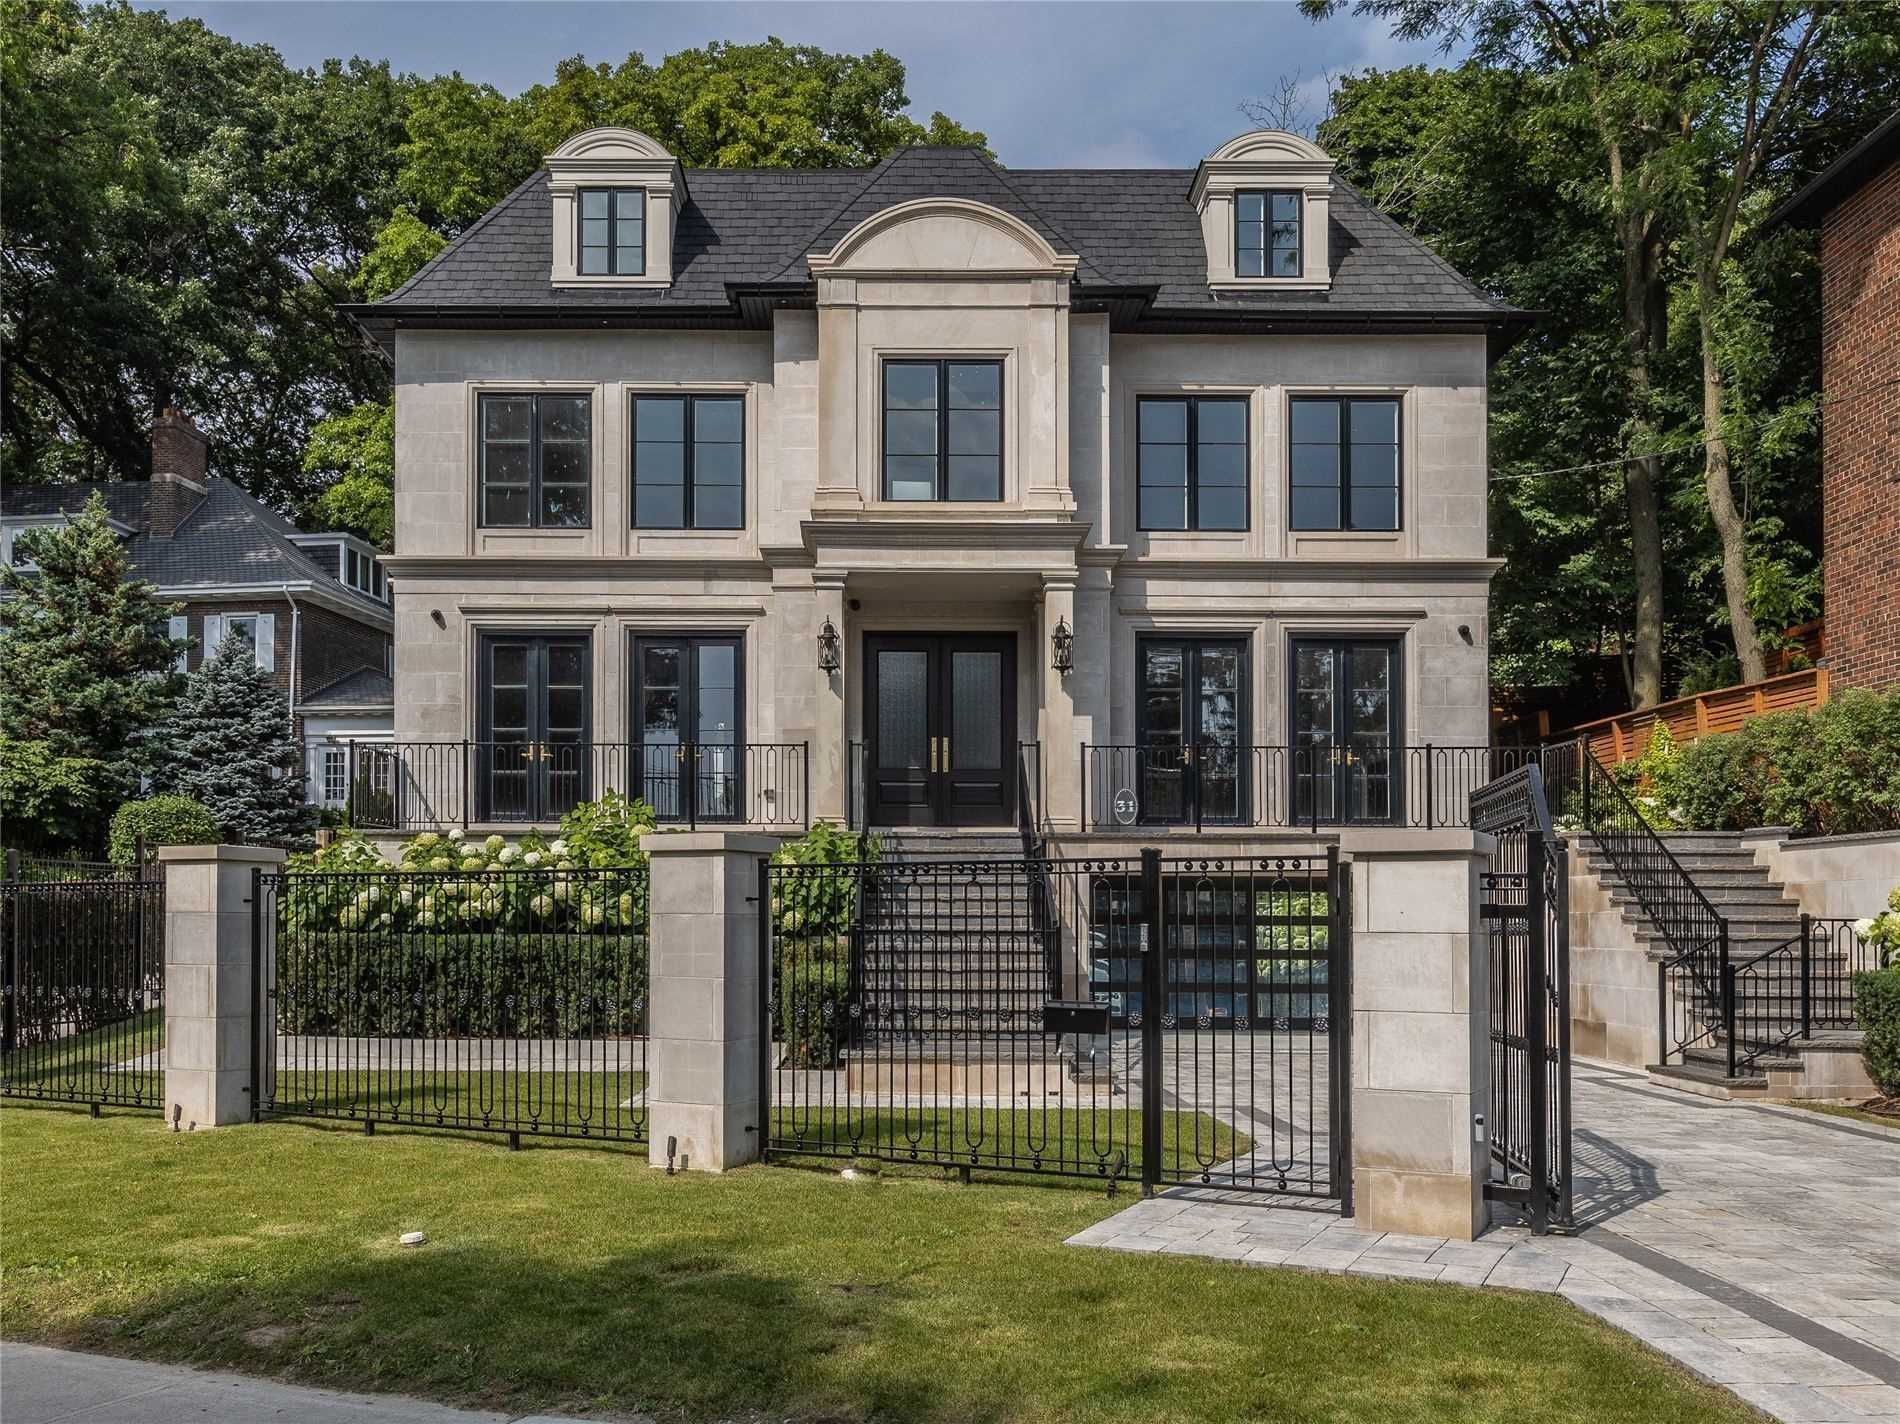 Detached house For Sale In Toronto - 31 Russell Hill Rd, Toronto, Ontario, Canada M4V2S9 , 6 Bedrooms Bedrooms, ,9 BathroomsBathrooms,Detached,For Sale,Russell Hill